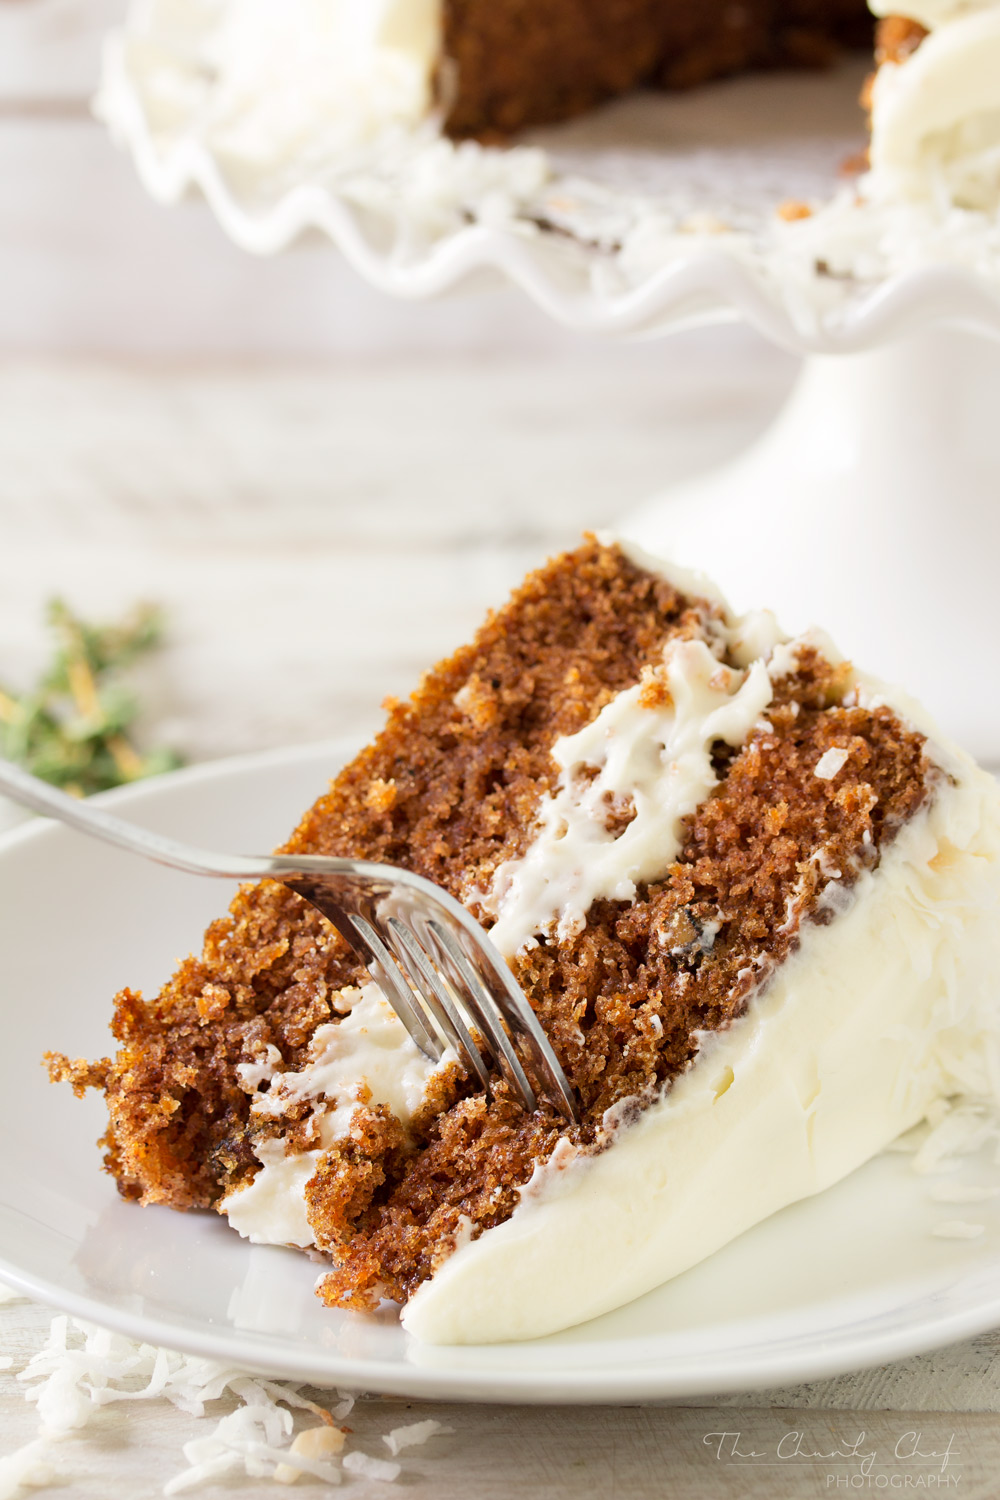 Carrot-Cake | This rich and decadent carrot cake will be an amazing addition to your parties! It's full of great flavors and slathered with the most amazing frosting!